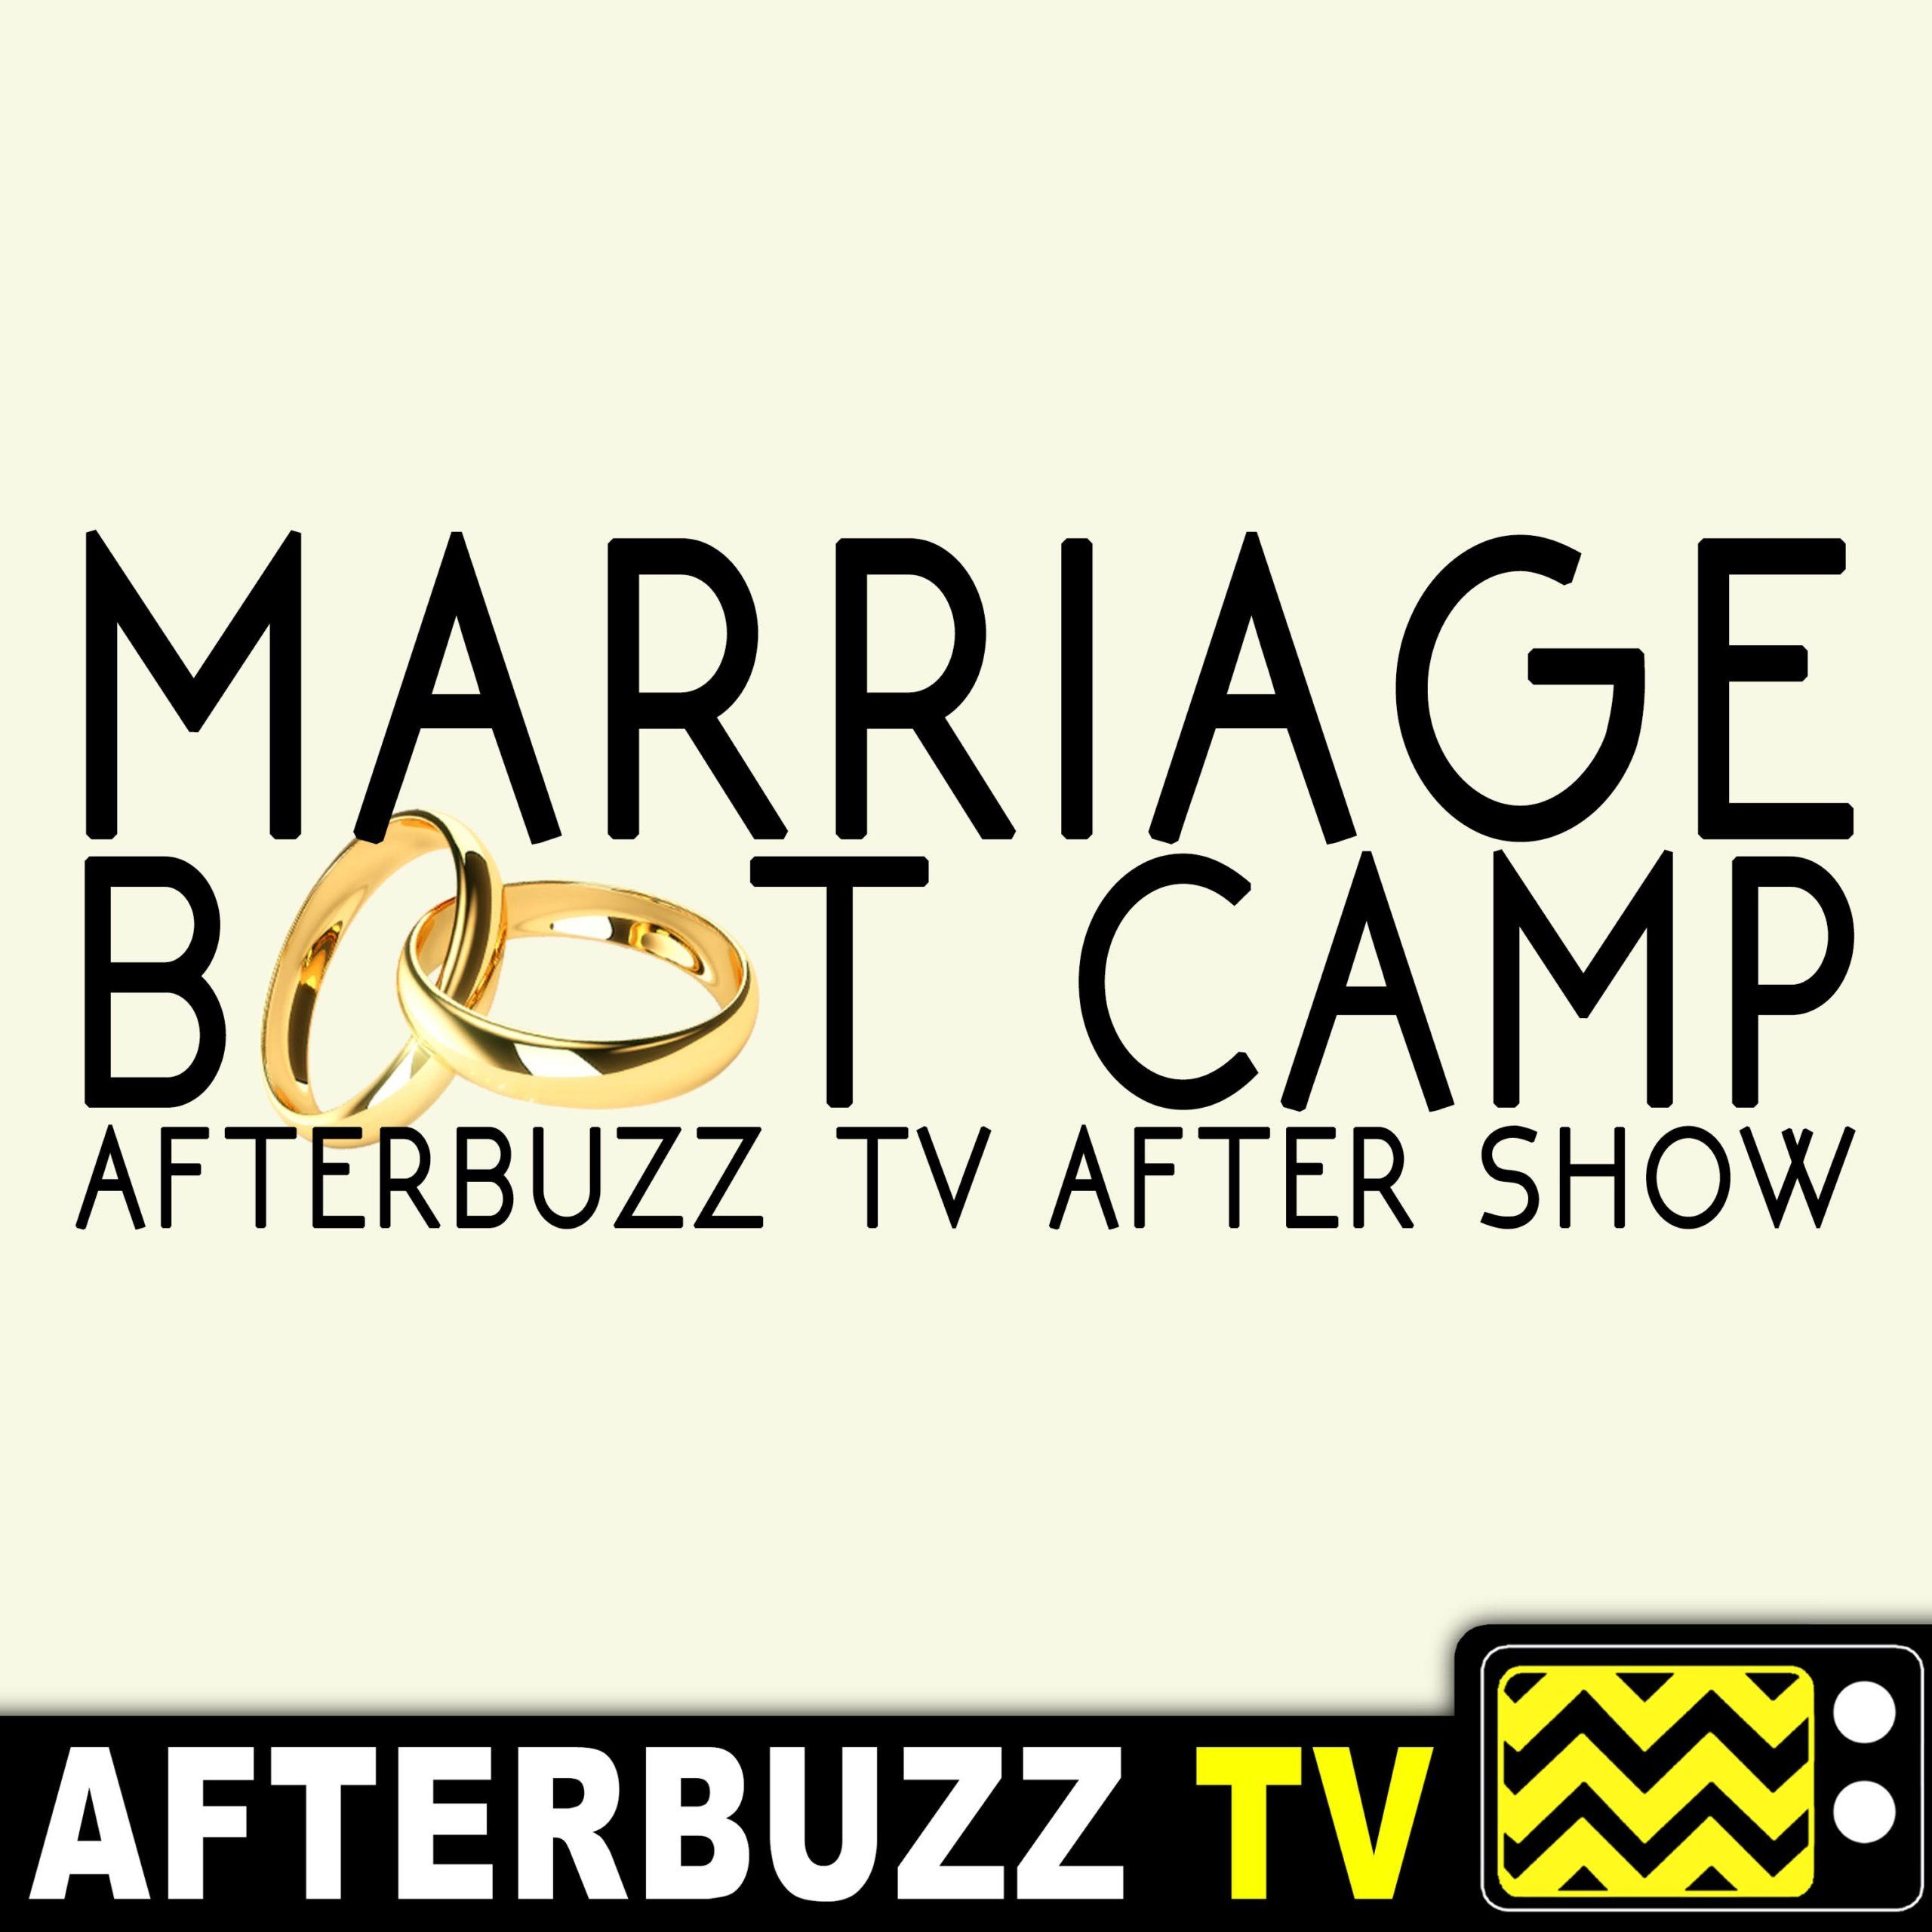 The Time Has Come! The End is Near and the Drama Has Come to a Boil.- S16 E10 'Marriage Boot Camp' After Show